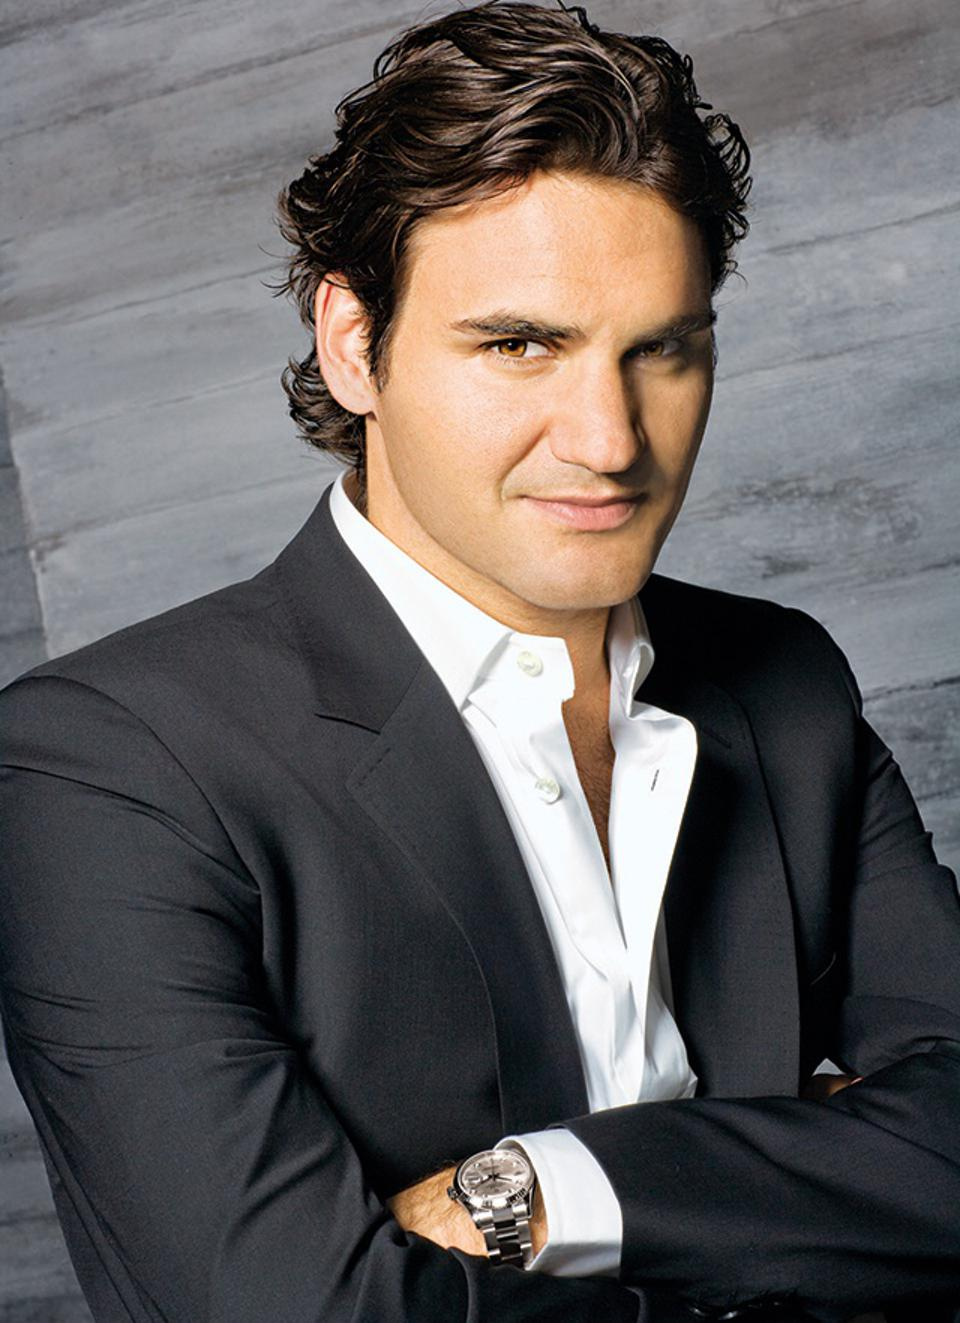 Roger Federer wears Rolex on and off the court.